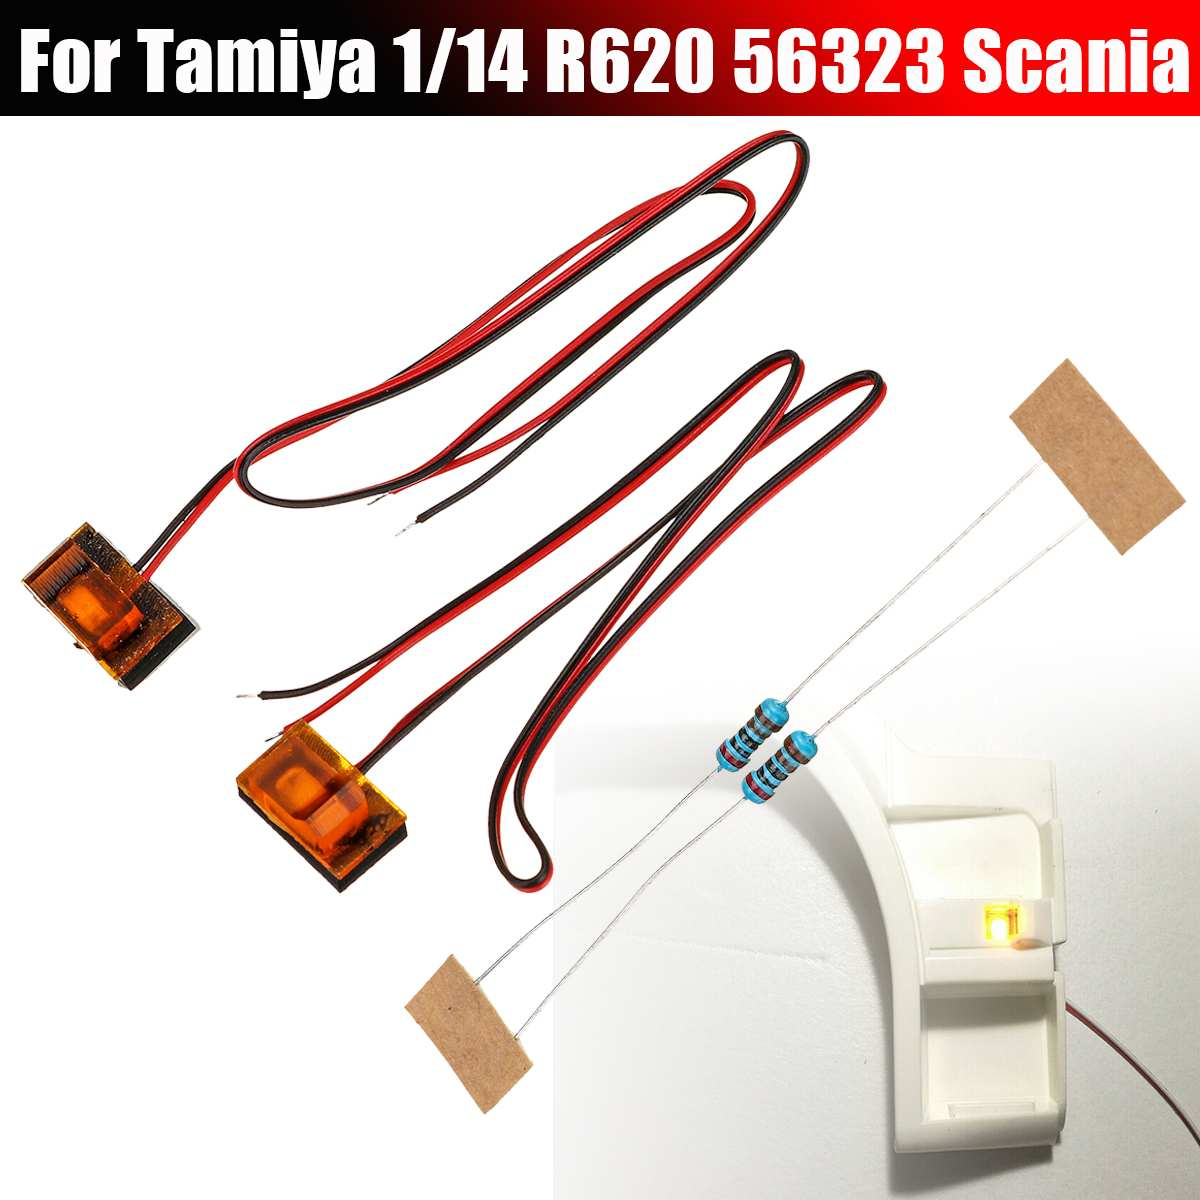 NEW 2PCS Replacement RC <font><b>Truck</b></font> Side Pedal Turn Signal <font><b>Light</b></font> For Tamiya 1/14 Scania R620 56323 RC <font><b>Truck</b></font> Parts RC Car Accessories image